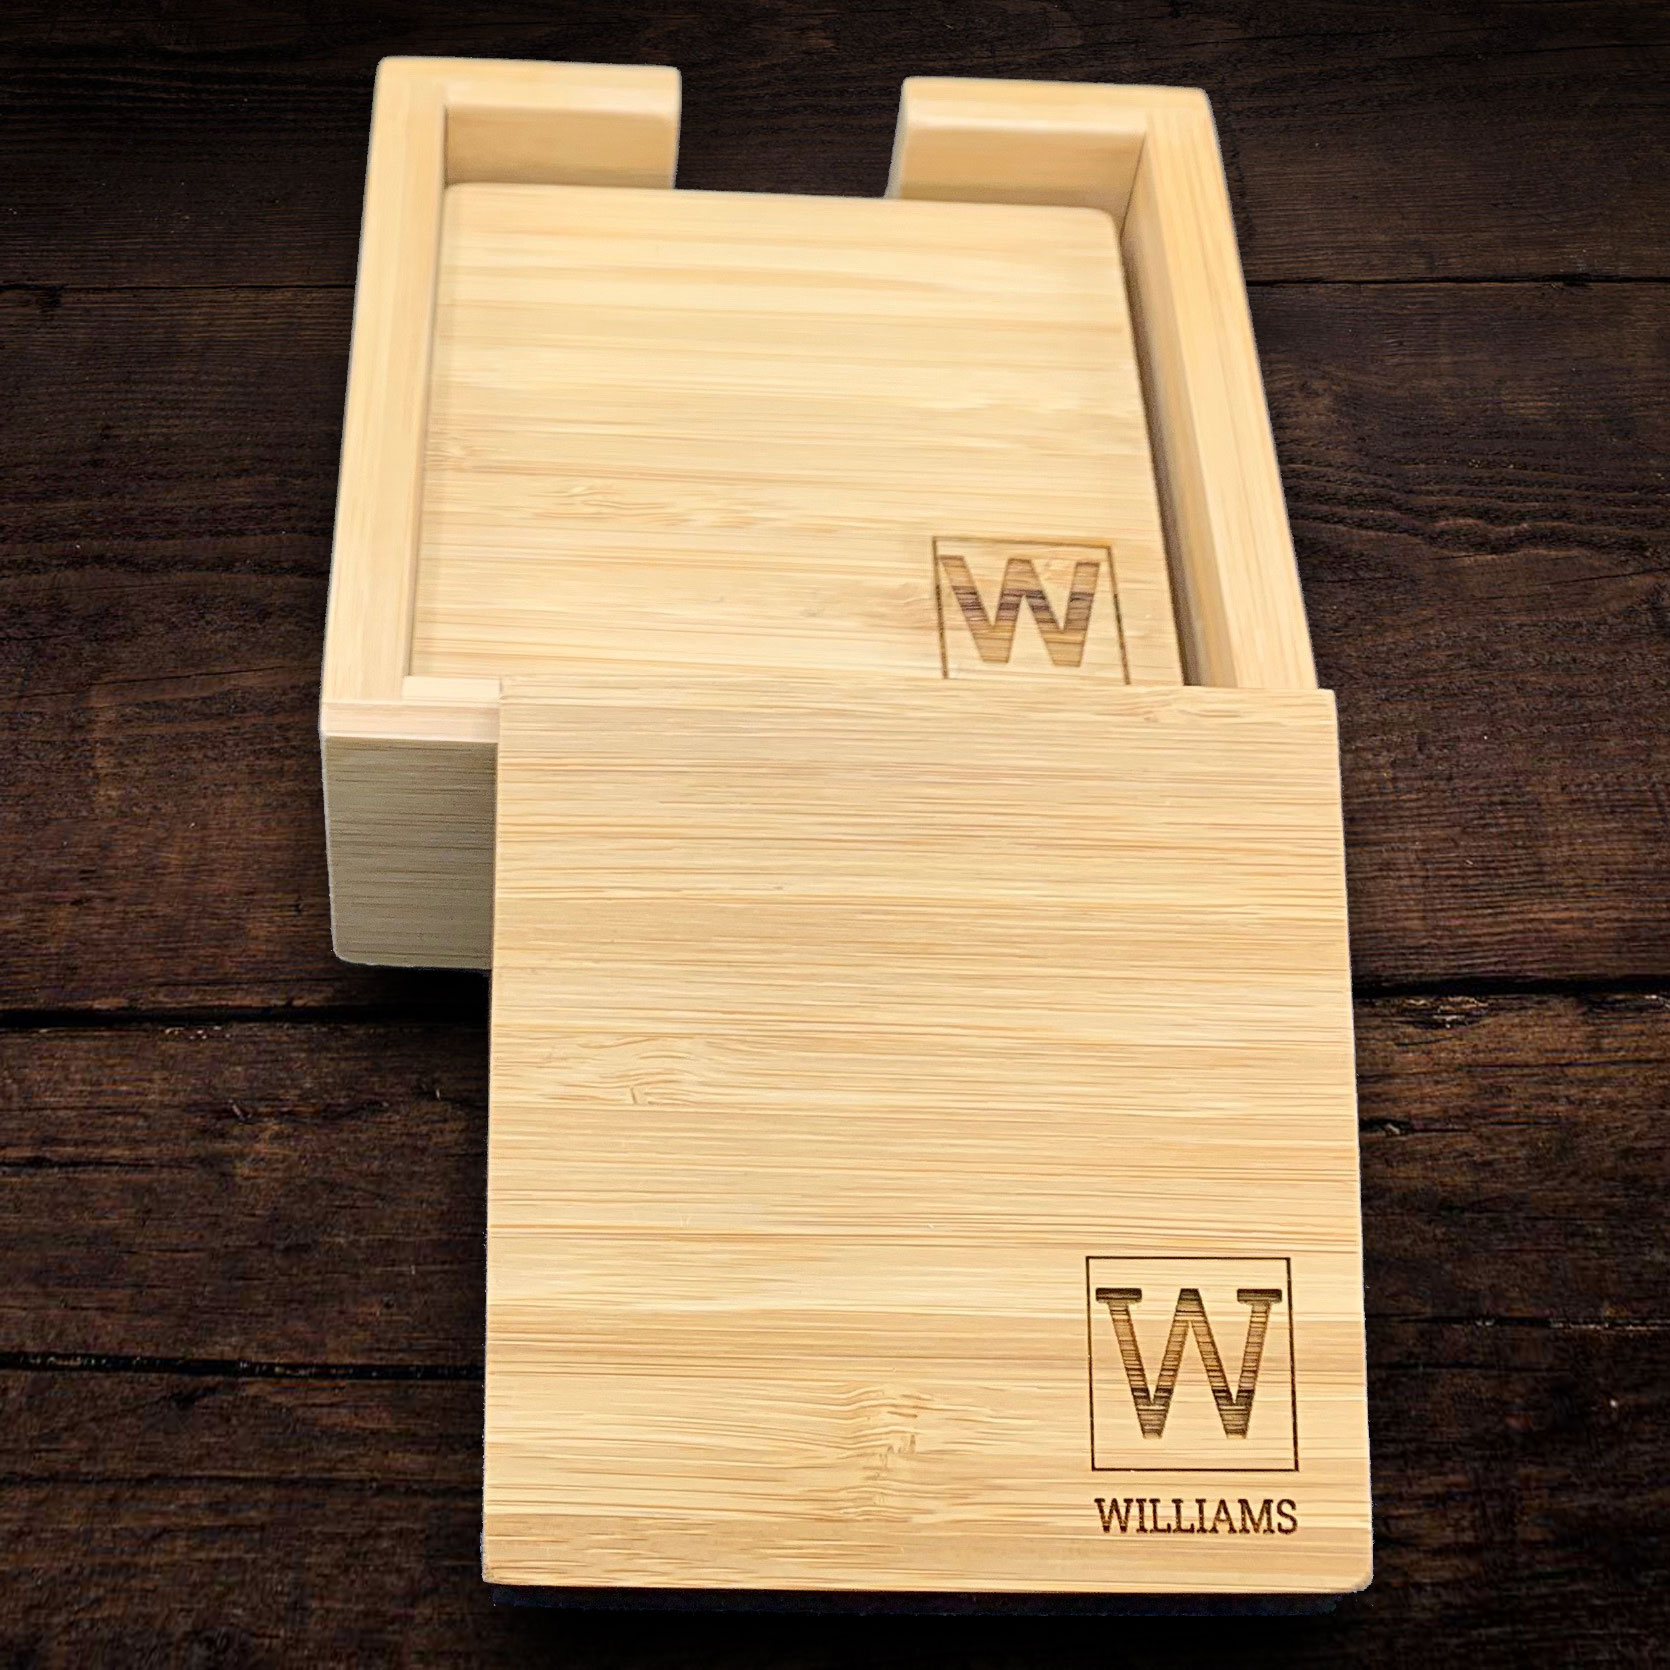 Personalized custom engraved bamboo coasters make the perfect gift for families and business people